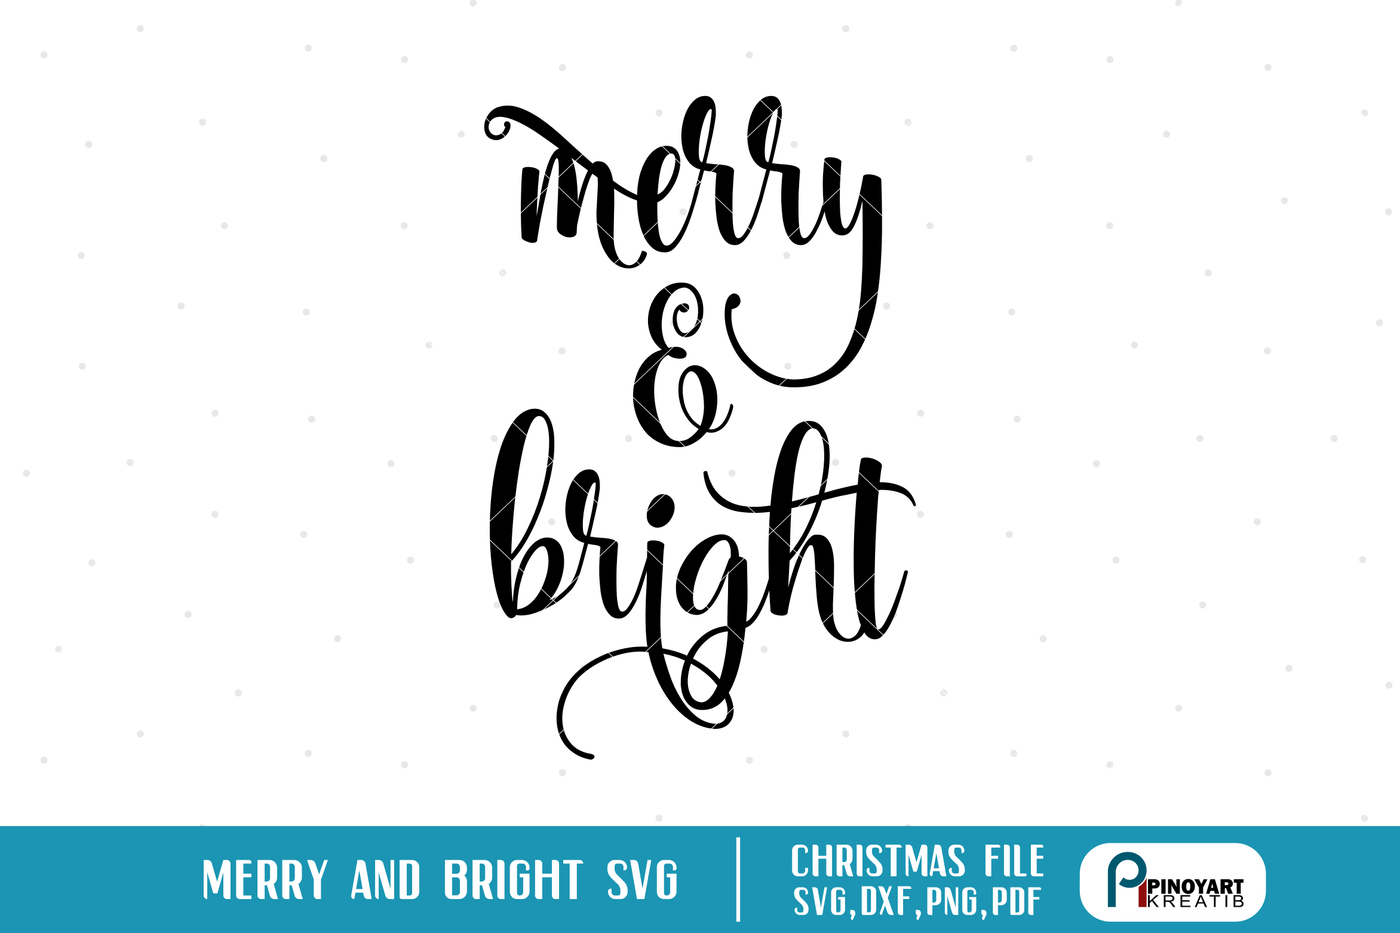 Merry And Bright Svg Merry And Bright Dxf File Christmas Svg Christmas By Pinoyart Thehungryjpeg Com